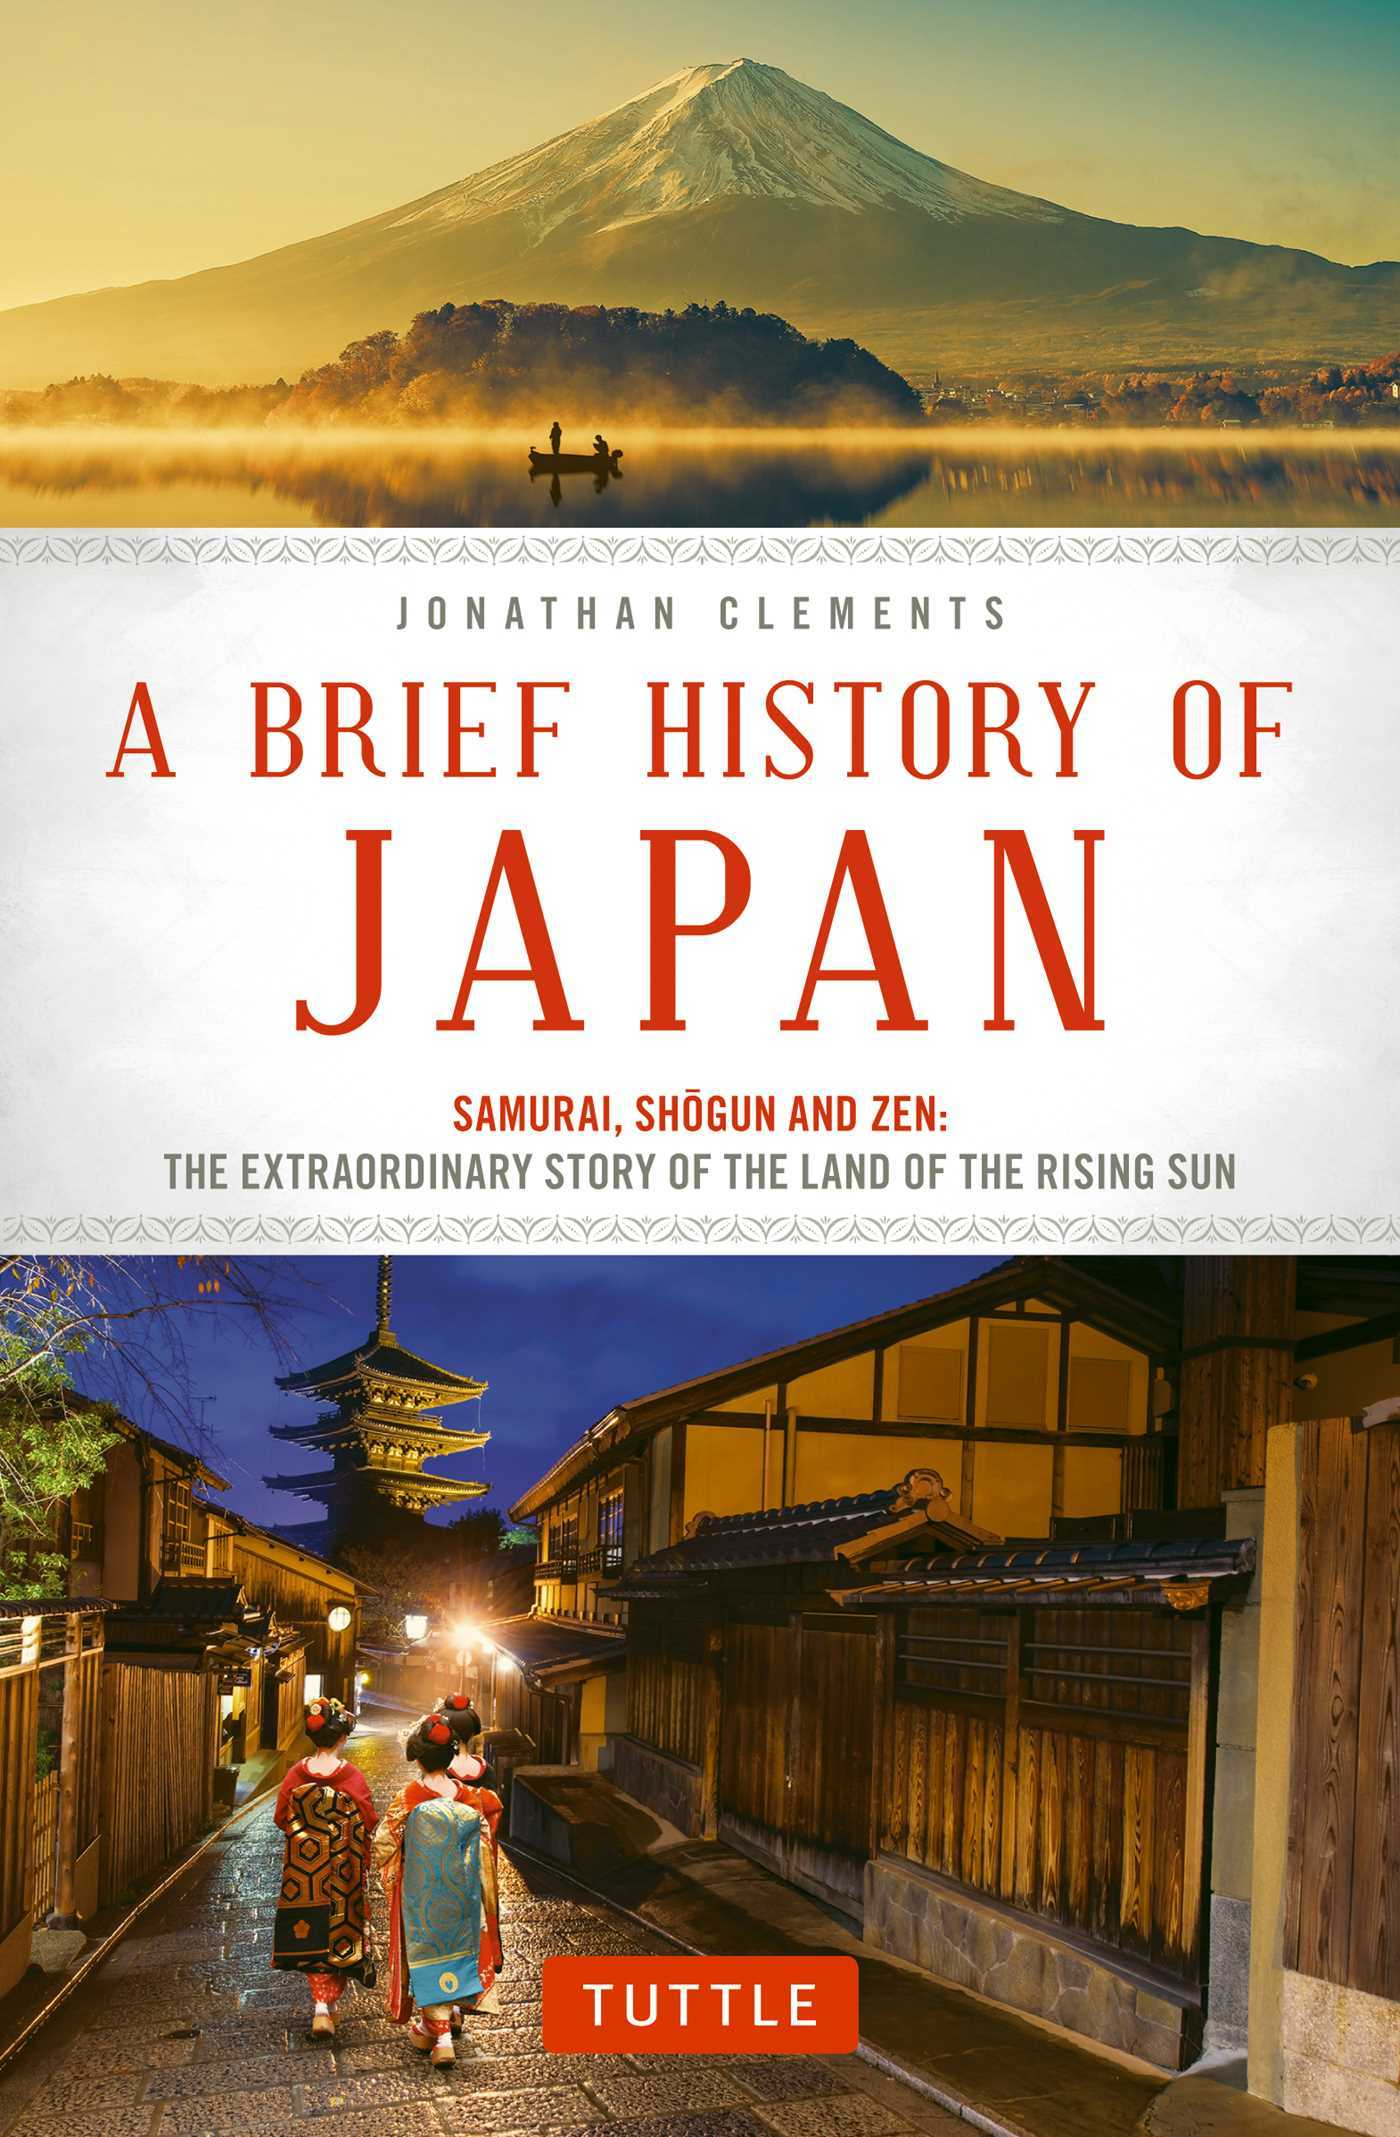 A Brief History of Japan Samurai, Shogun and Zen The Extraordinary Story of the Land of the Rising Sun